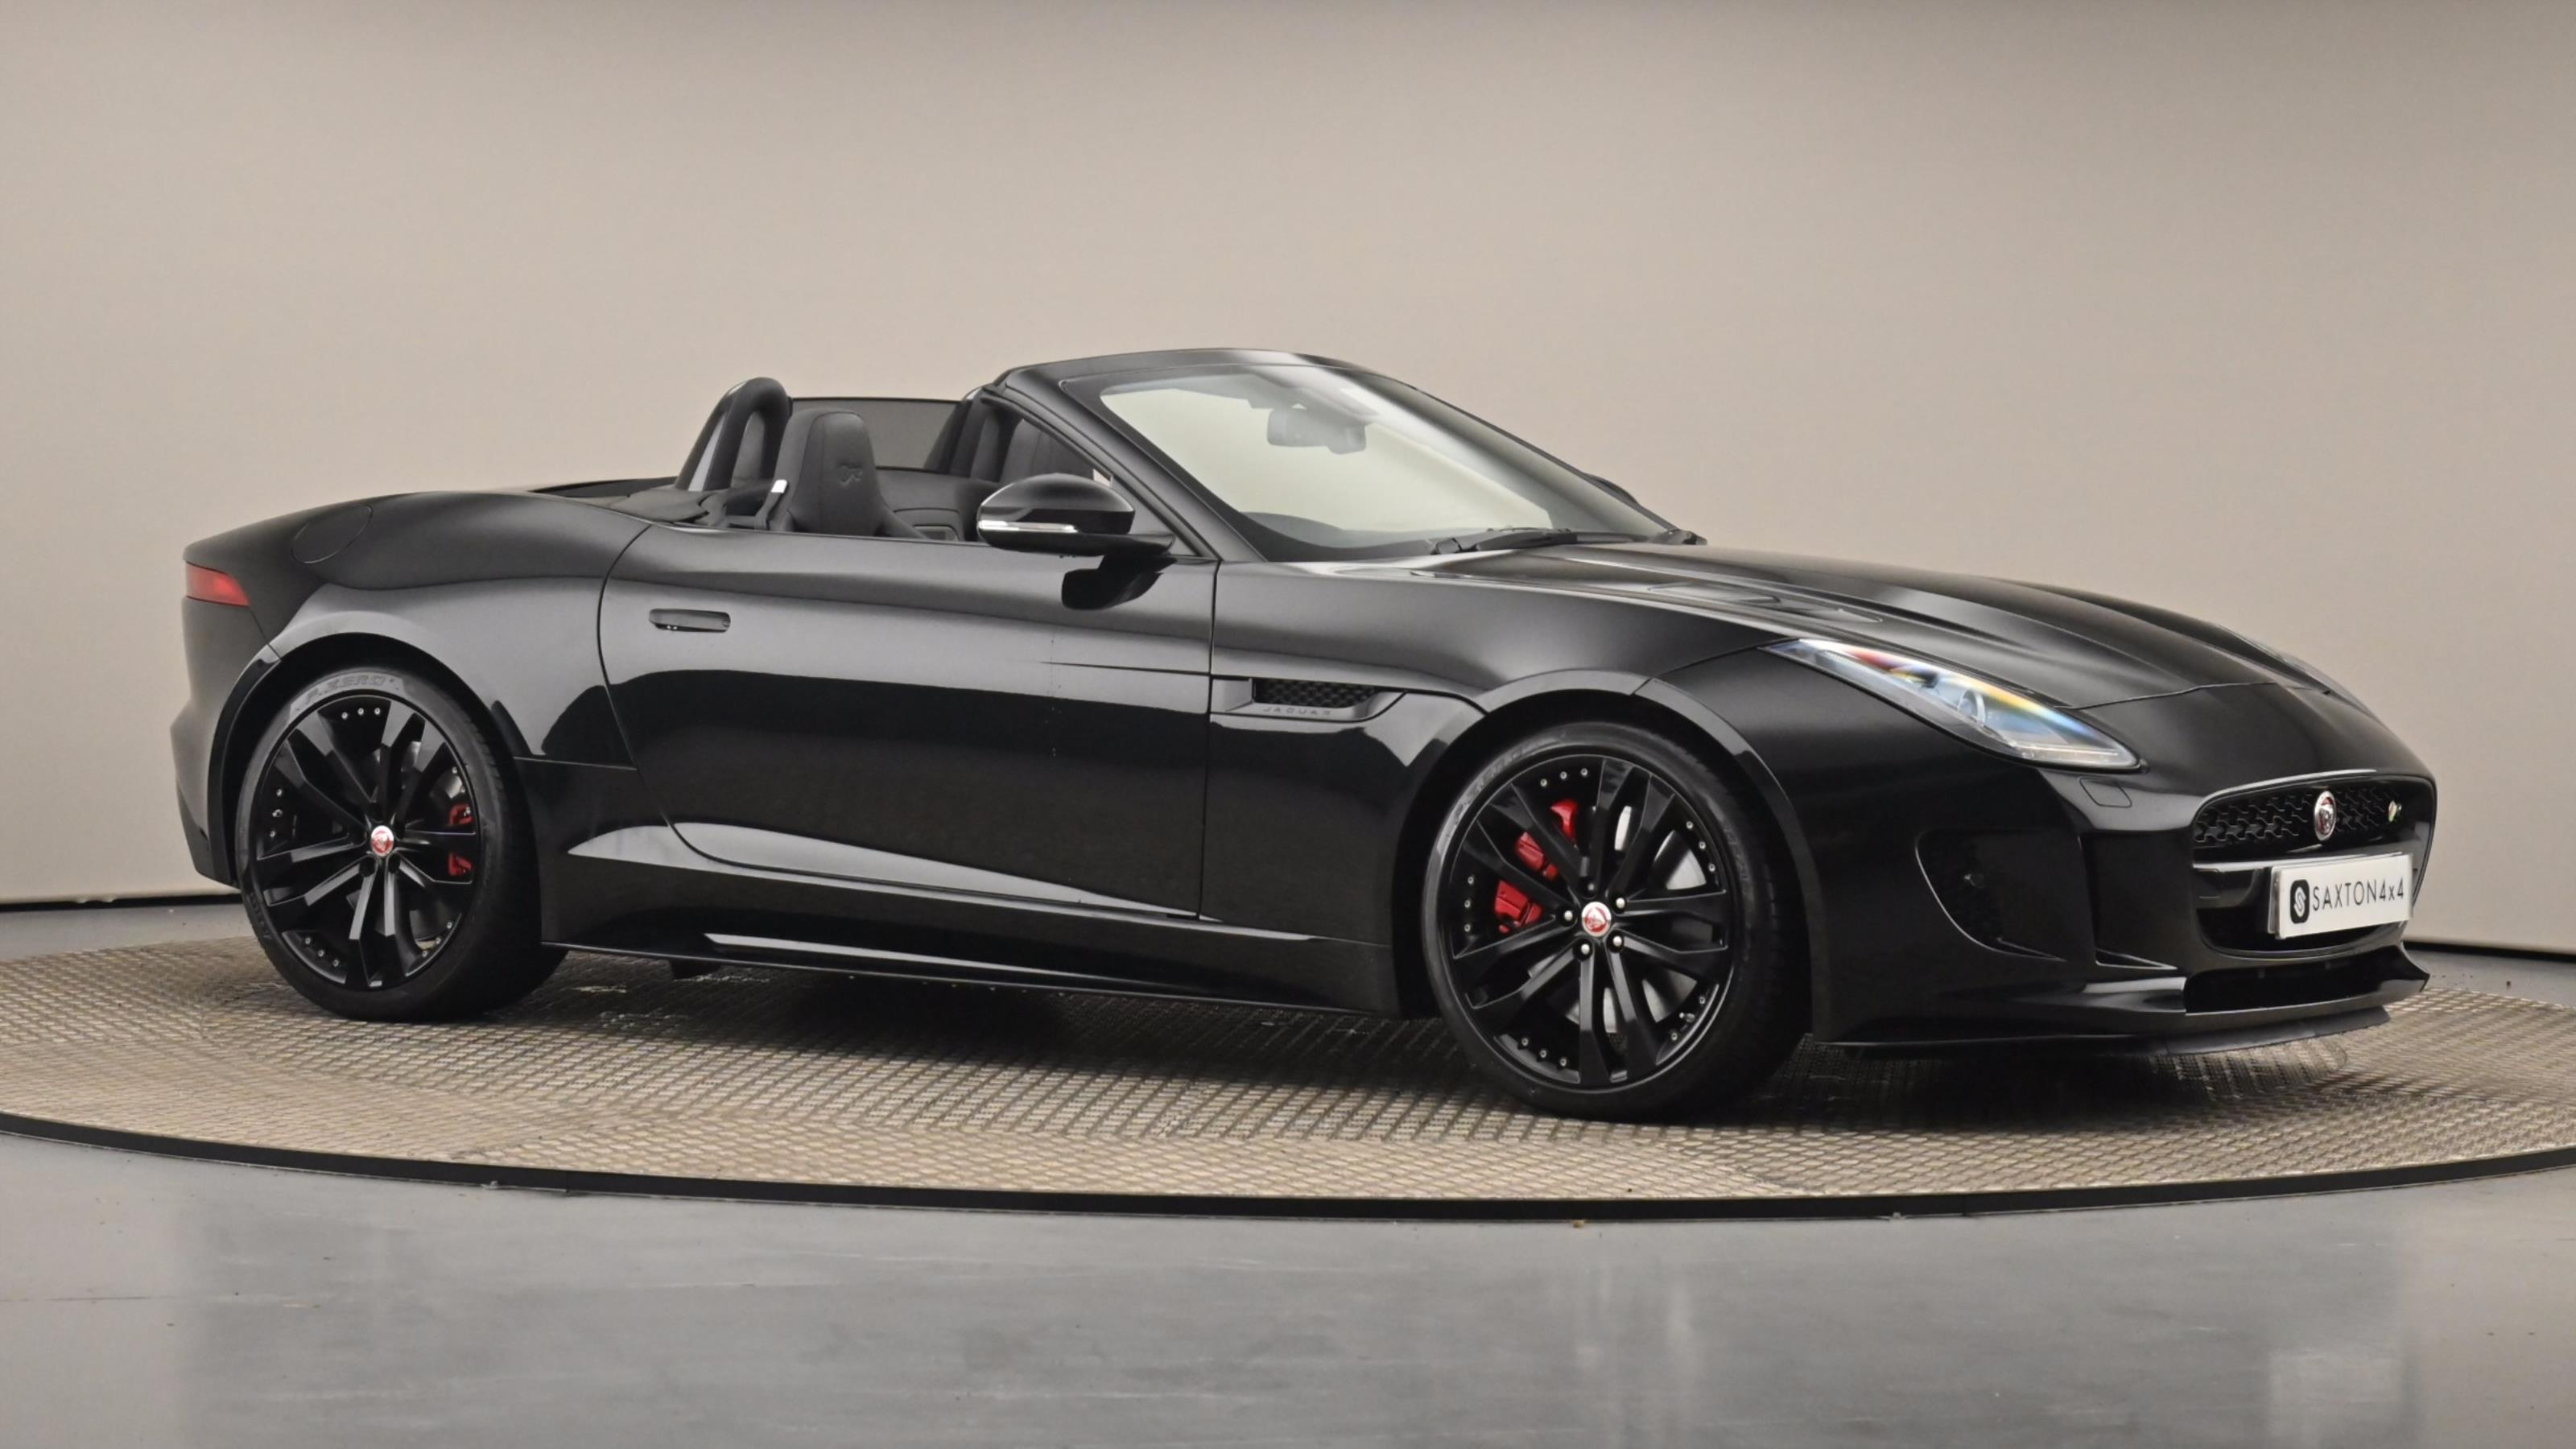 Used 2016 Jaguar F-TYPE 5.0 Supercharged V8 R 2dr Auto AWD at Saxton4x4